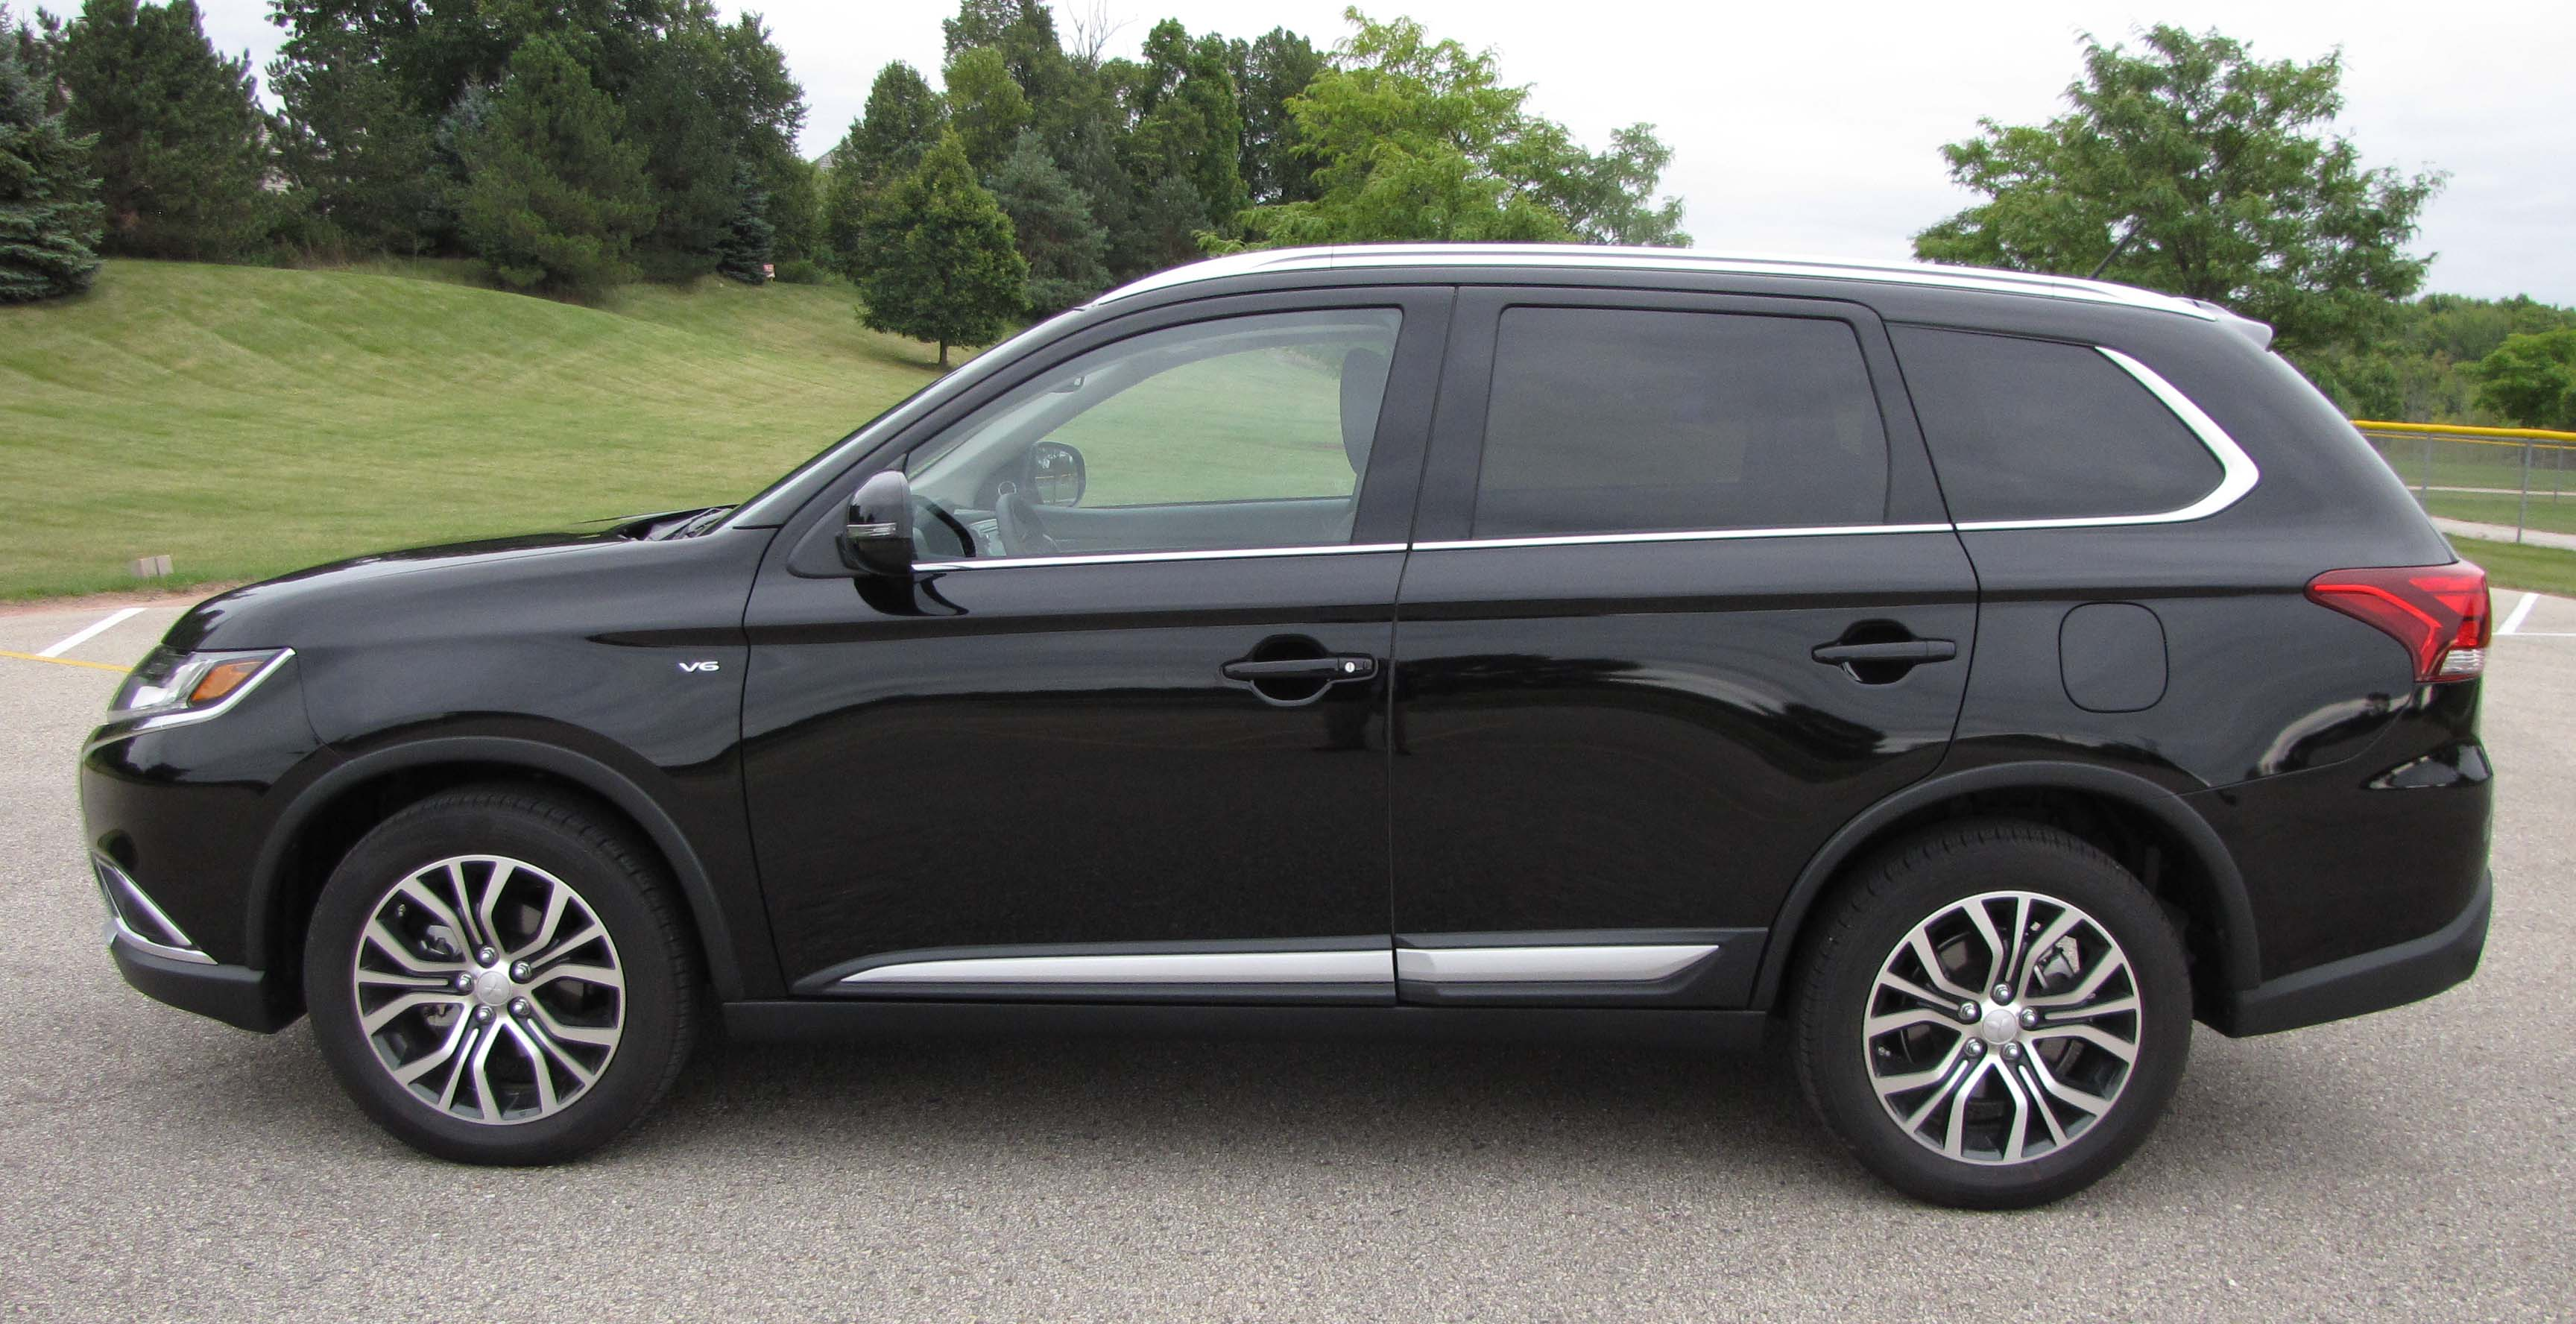 2016 Mitsubishi Outlander 3 0 GT S-AWC | Savage On Wheels